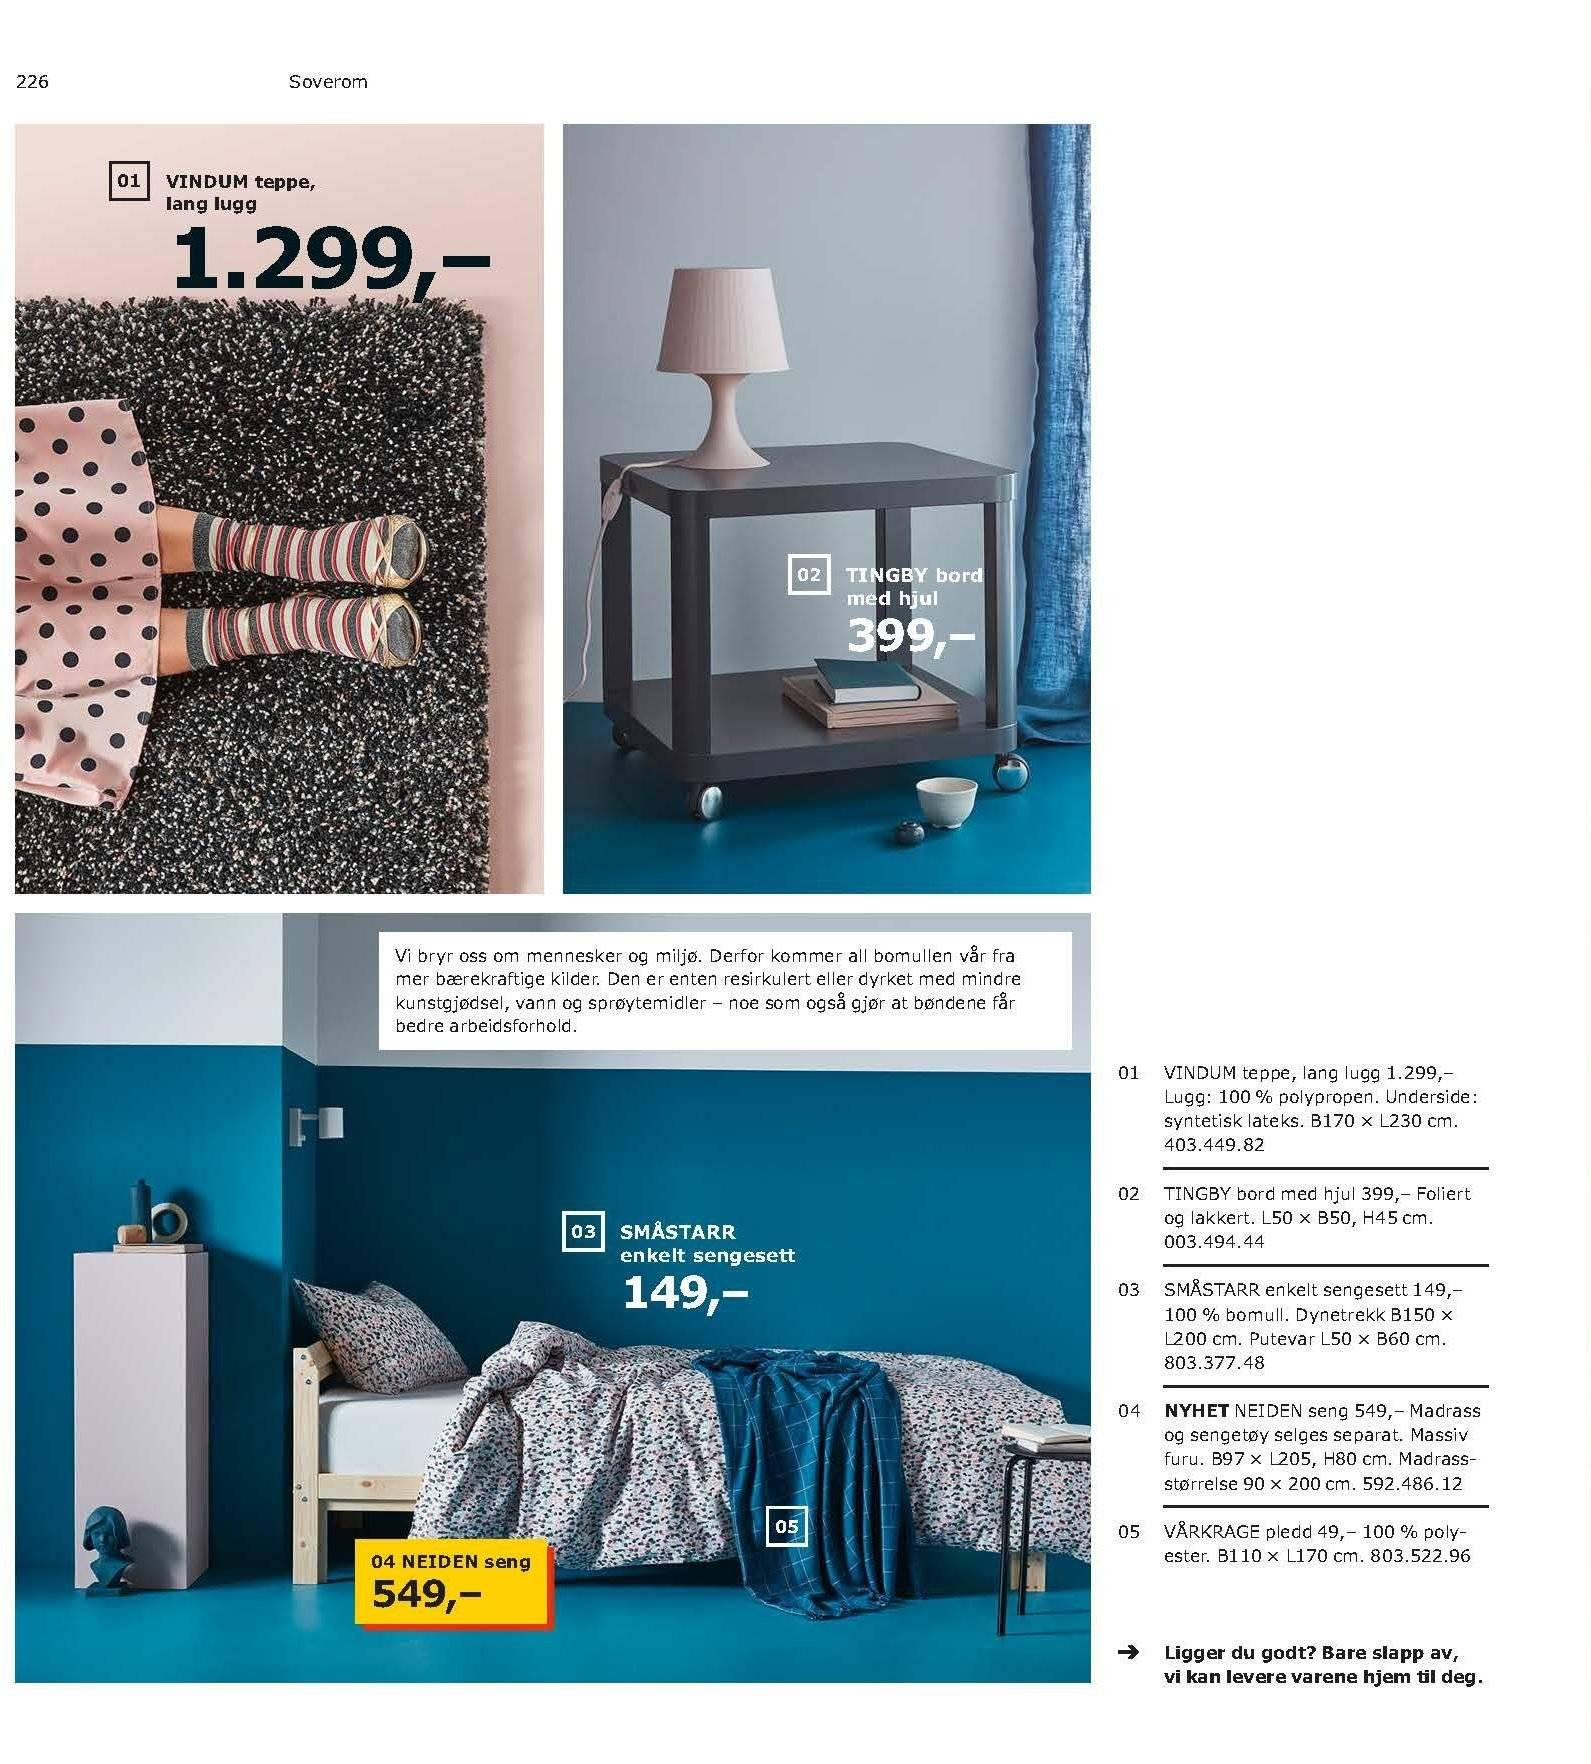 Kundeavis IKEA - 21.08.2018 - 11.08.2019. Side 226.